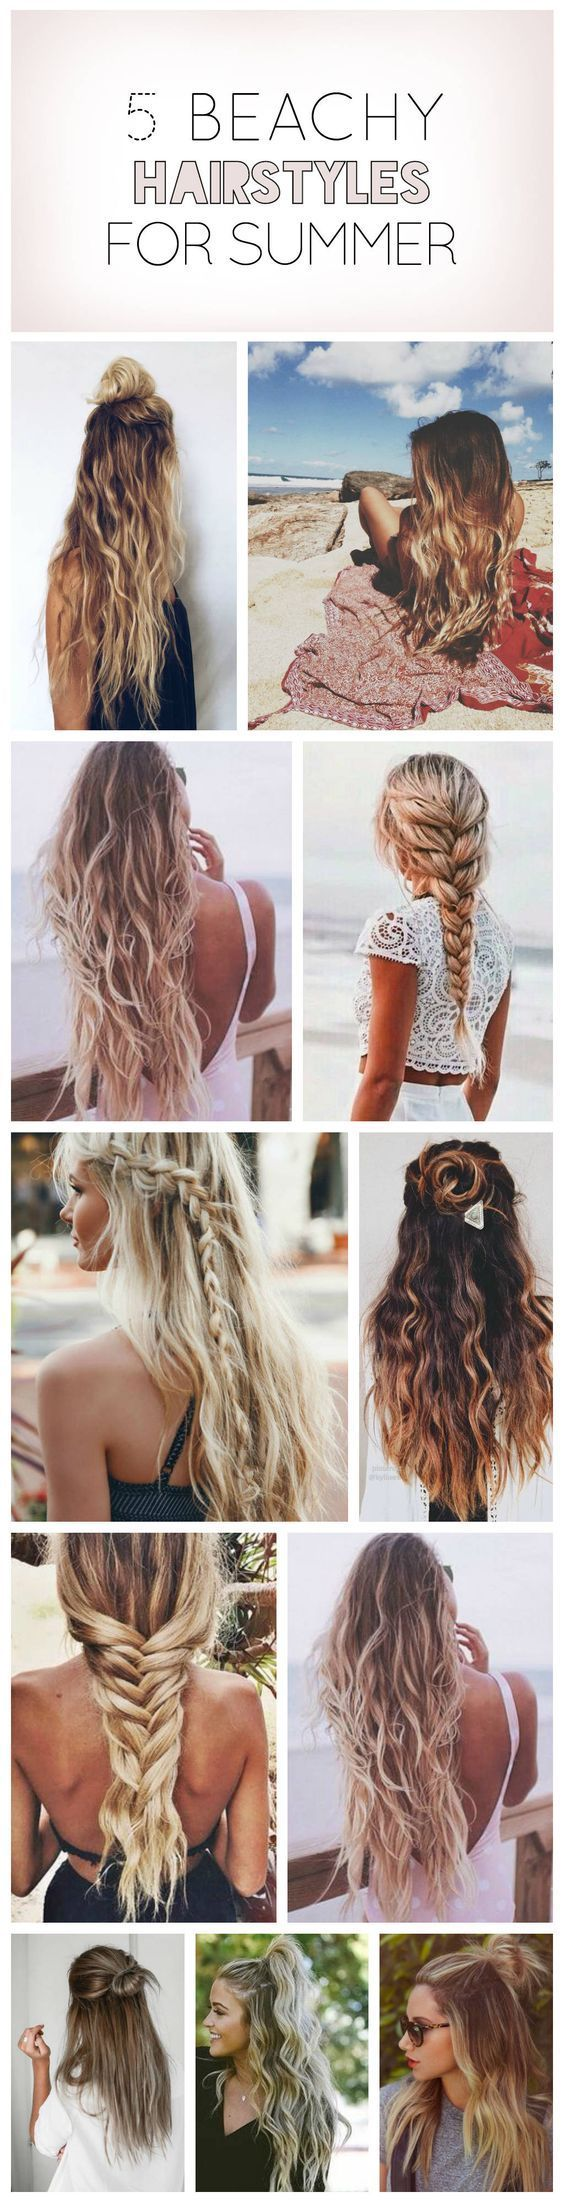 Tremendous 1000 Ideas About Vacation Hair On Pinterest Yarn Twist And Short Hairstyles Gunalazisus